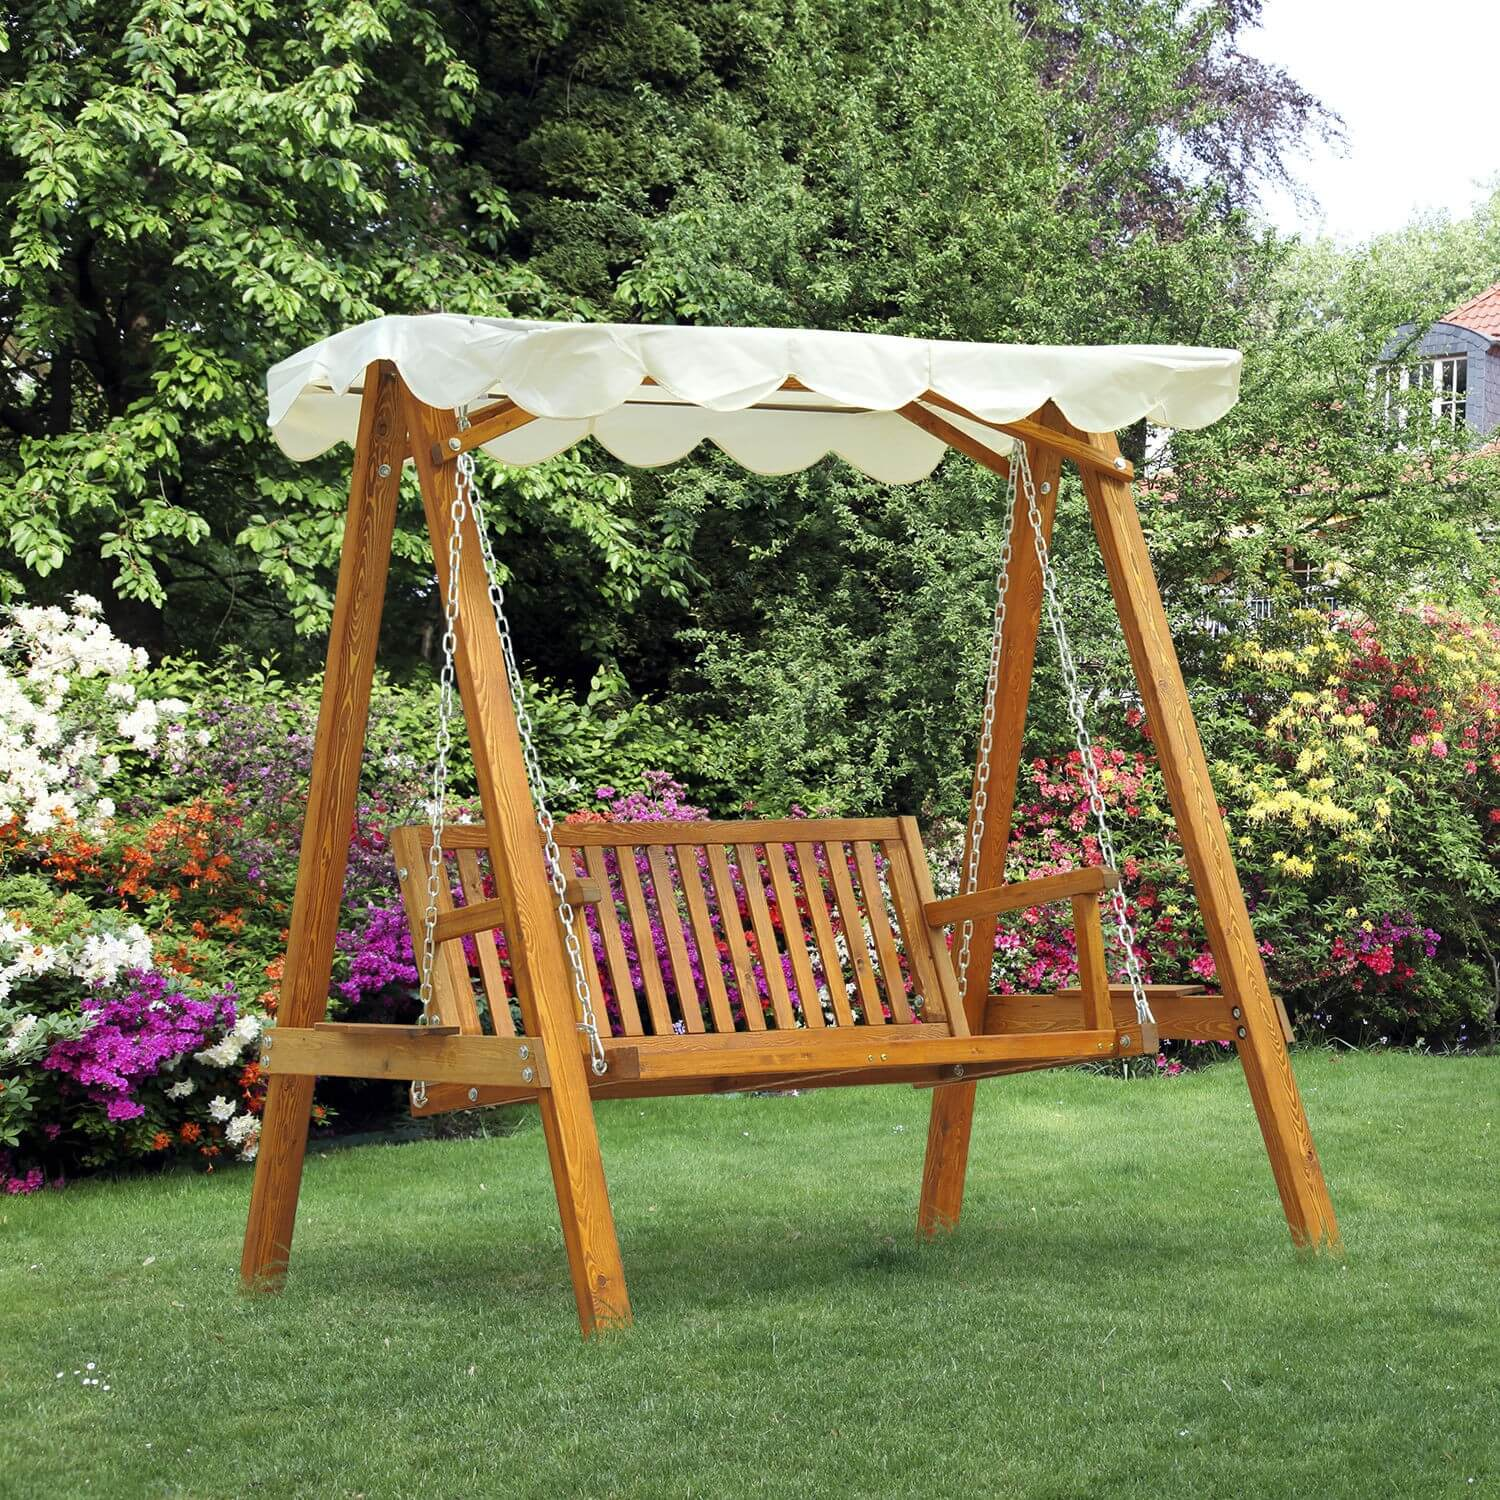 REPAINTING WOODEN PATIO SWING WITH CANOPY MAKEOVER IDEAS